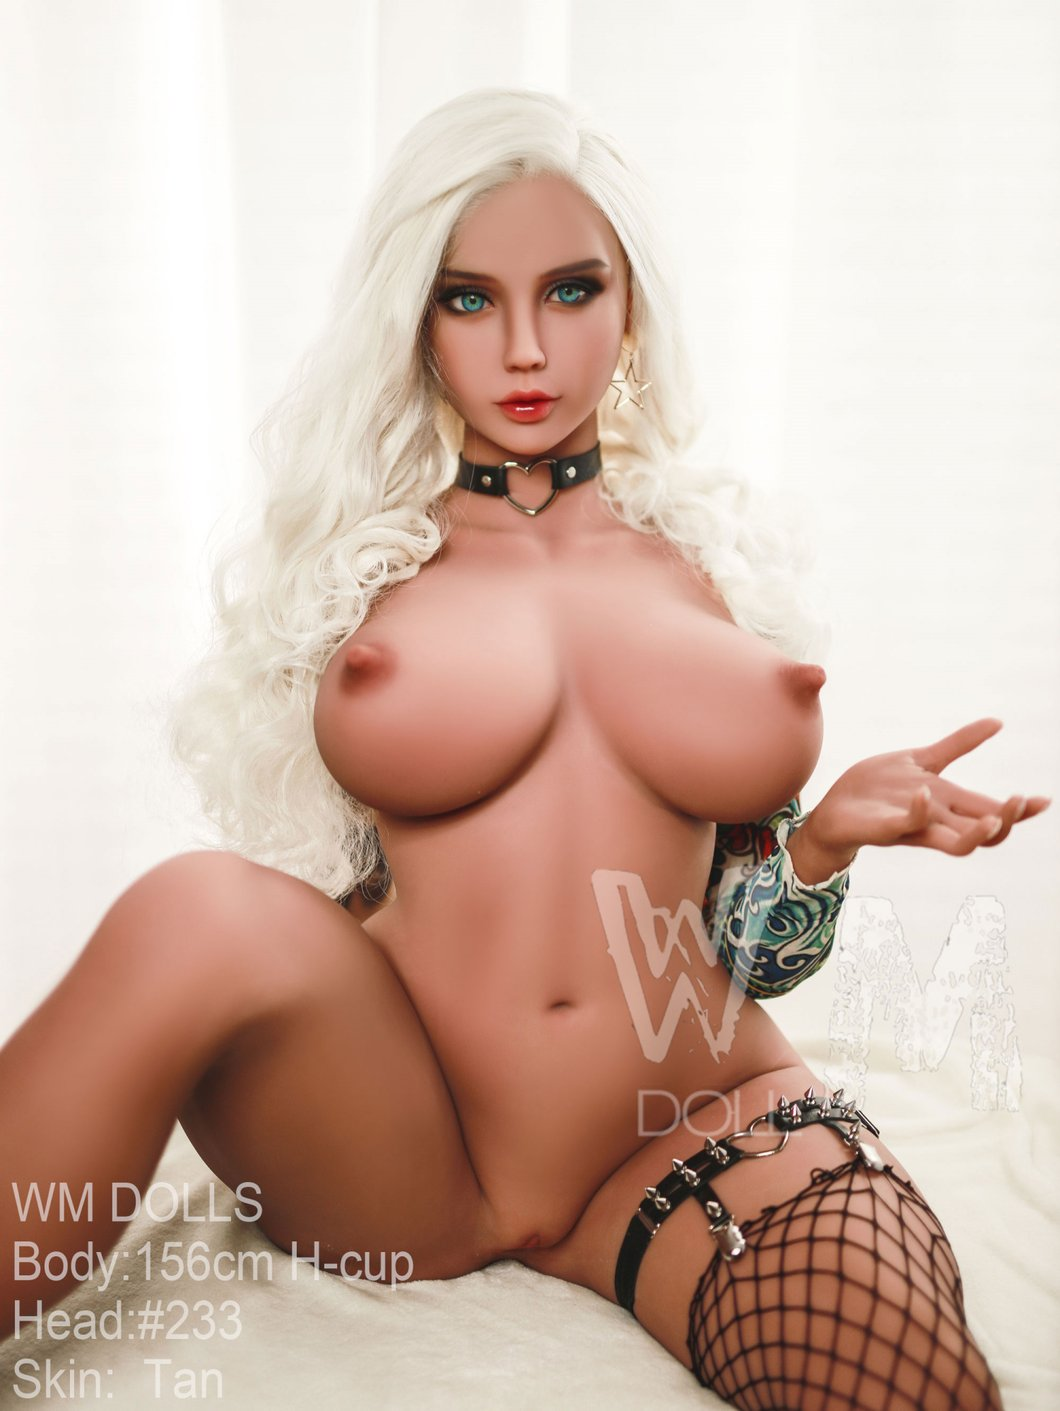 "Poupée sexuelle WM DOLL 156cm. (5'1"") H-Cup Head #233"